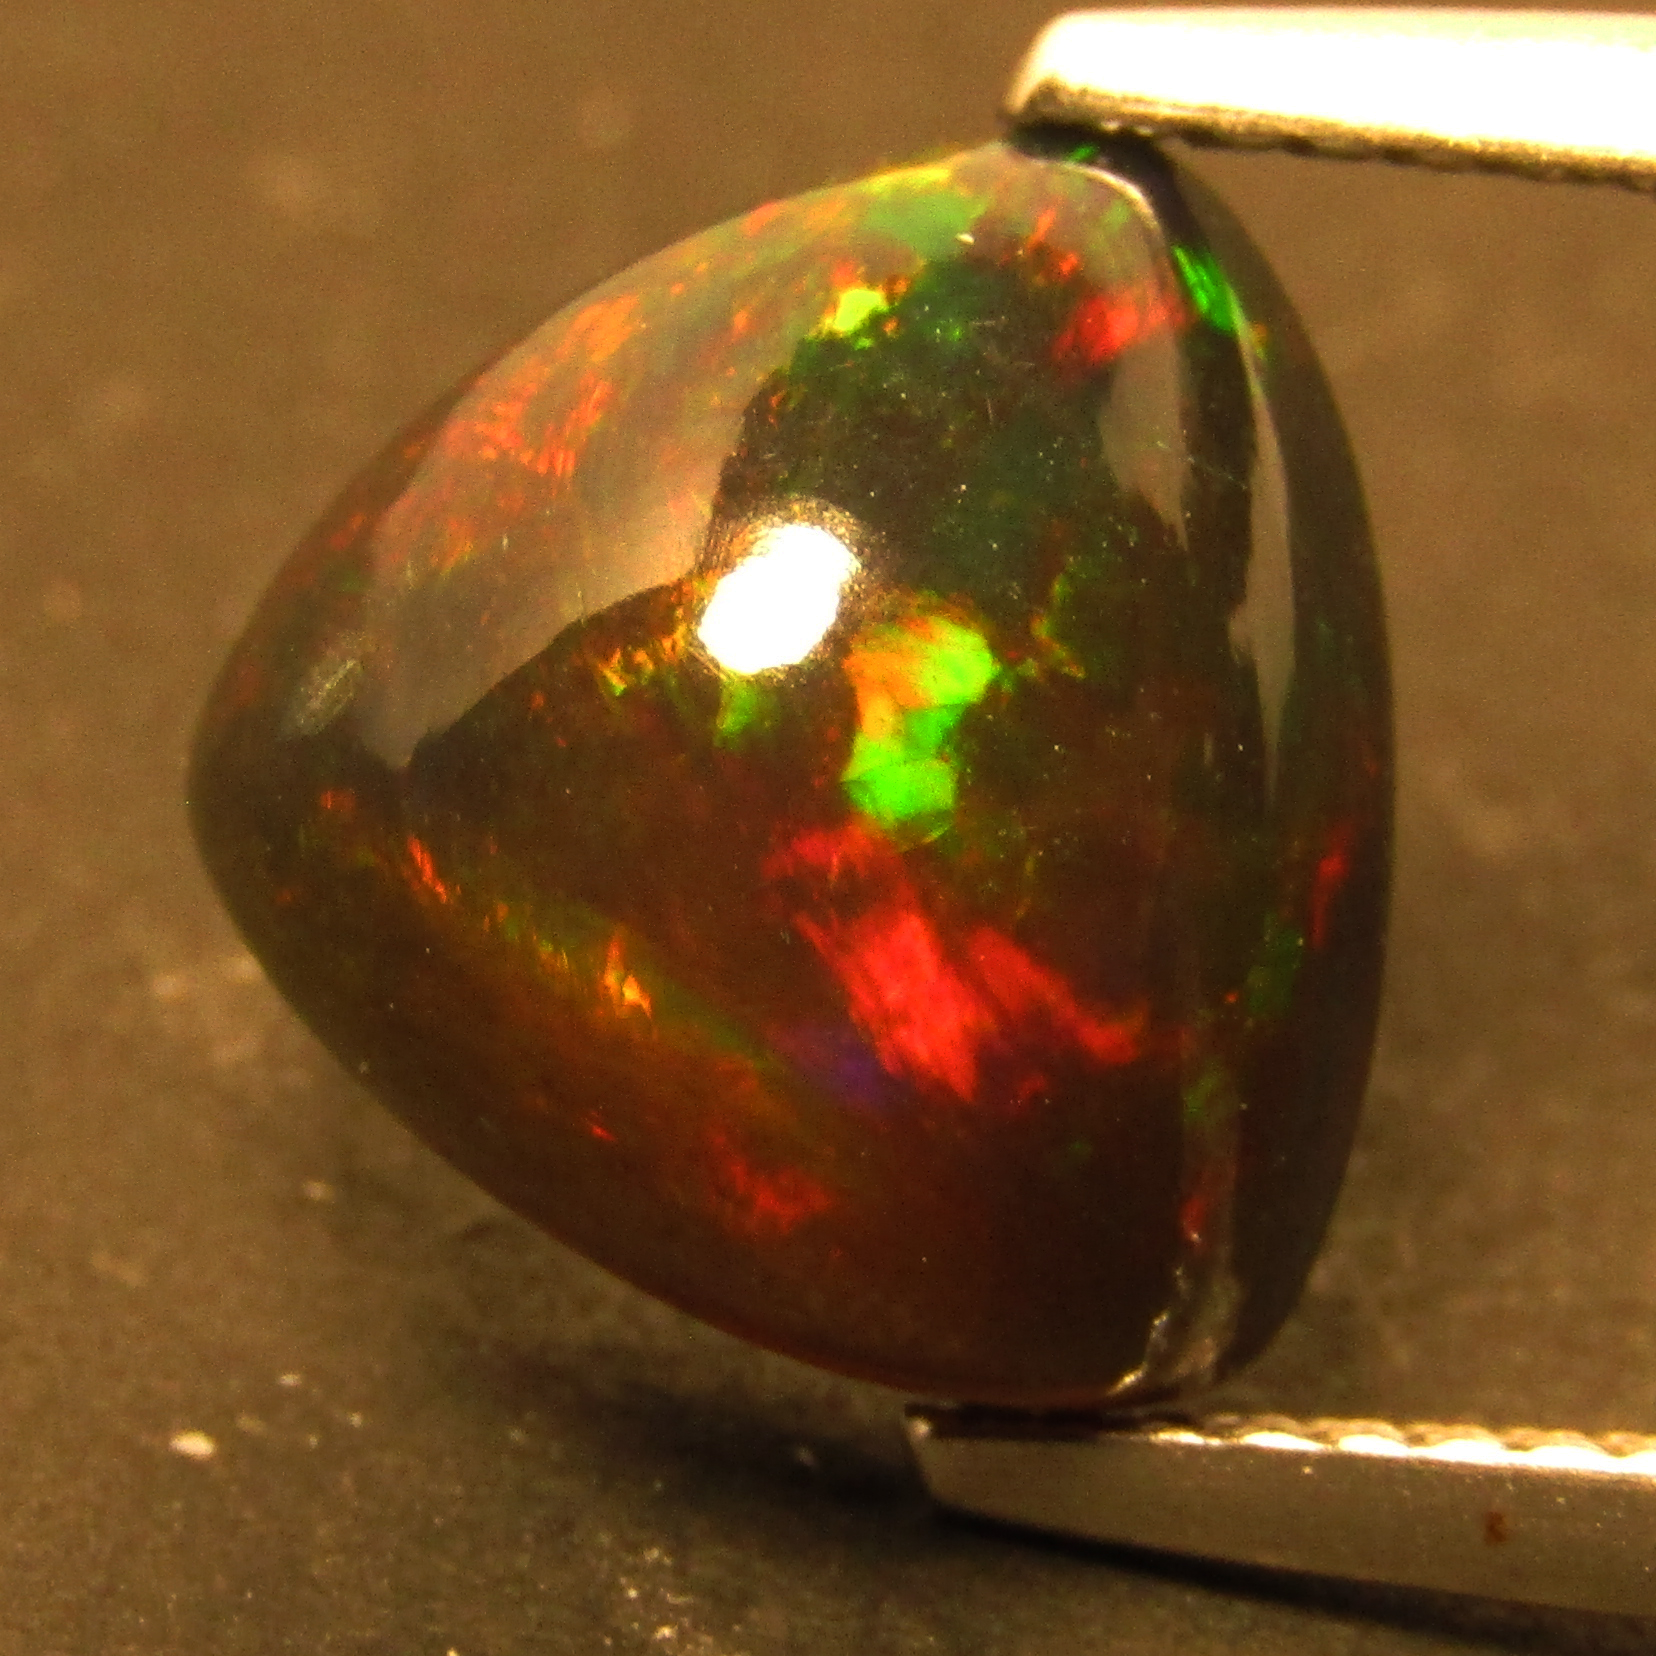 32.65 cts natural gemstone Ethiopian color play opal free form polished tumbled dazzling fire excellent color play AAA